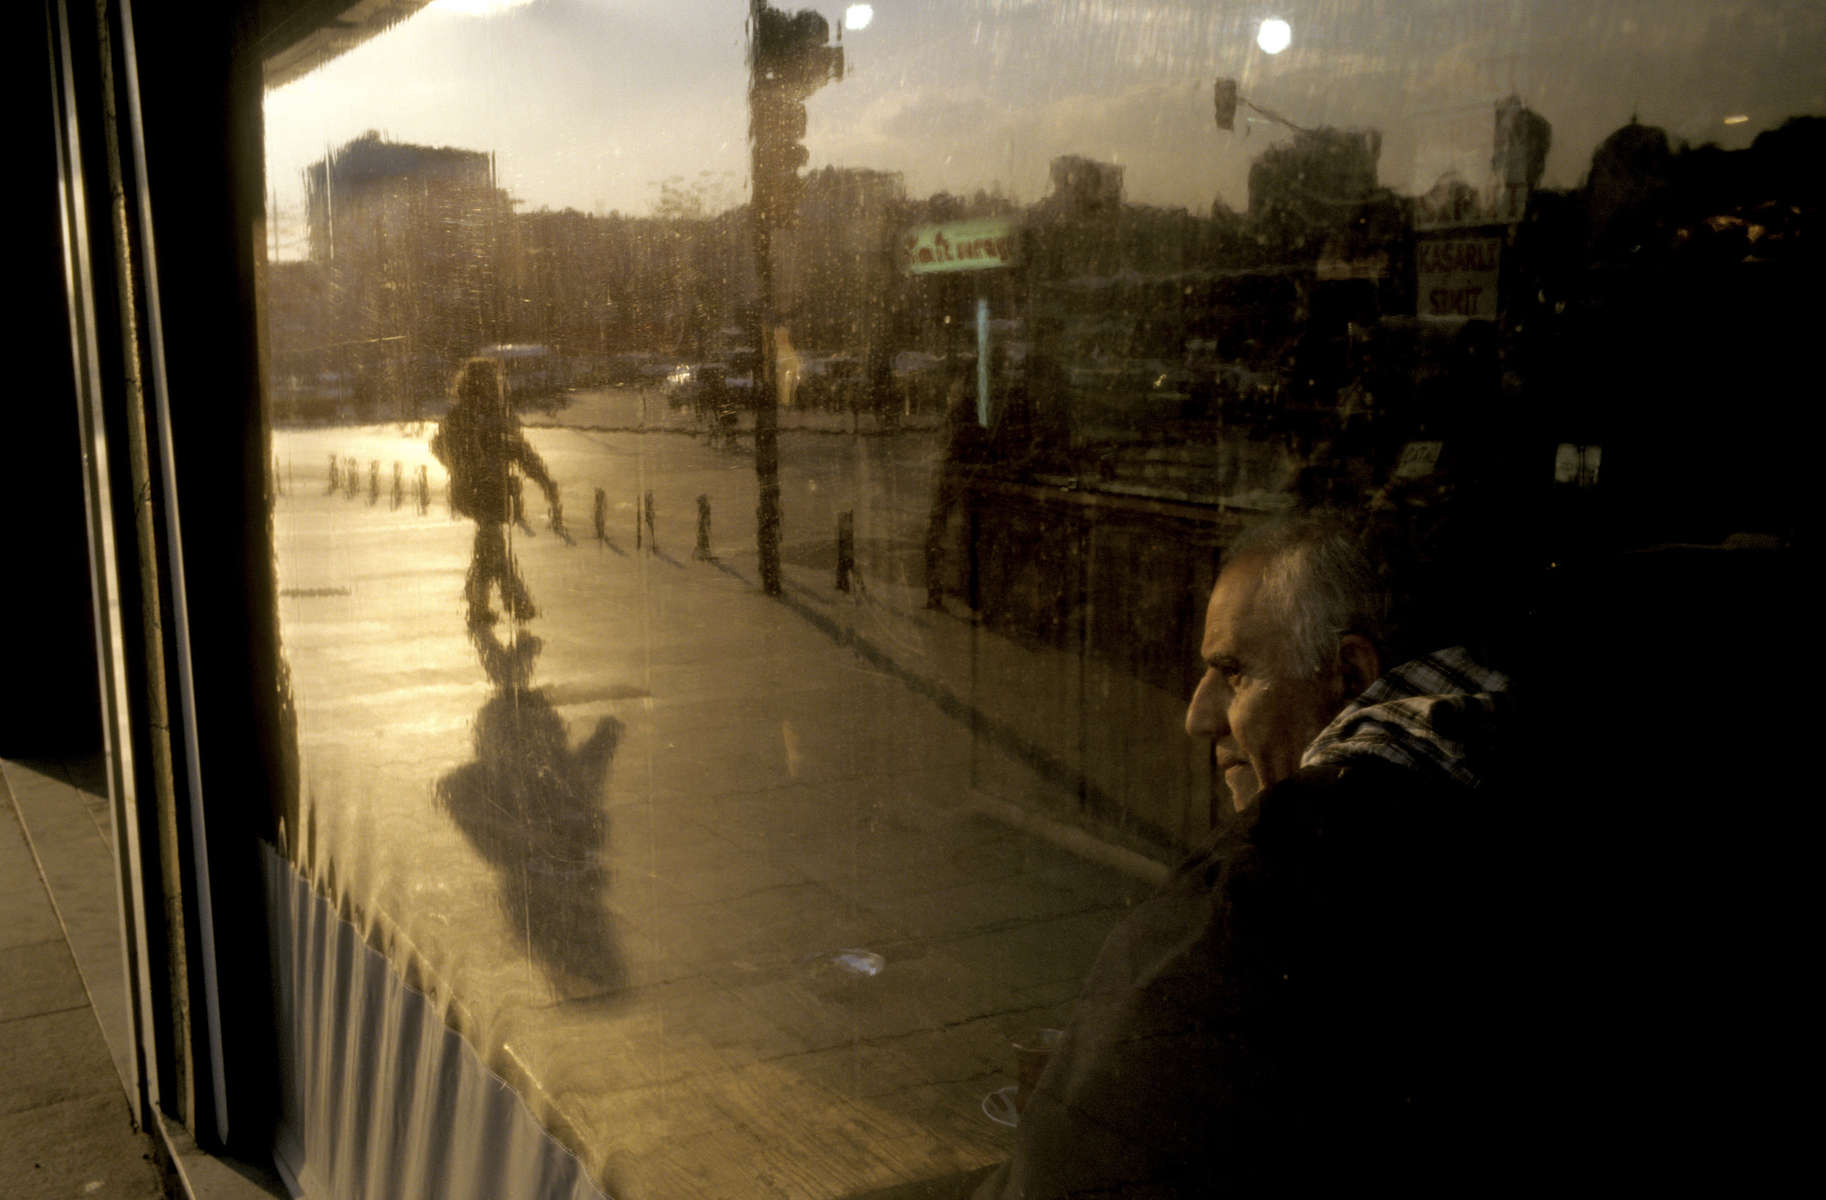 As the sun sets over Istanbul\'s Istiklal Square, a coffeehouse window captures the reflection of a pedestrian passing on the street while inside, a customer drinks coffee and watch the world outside.